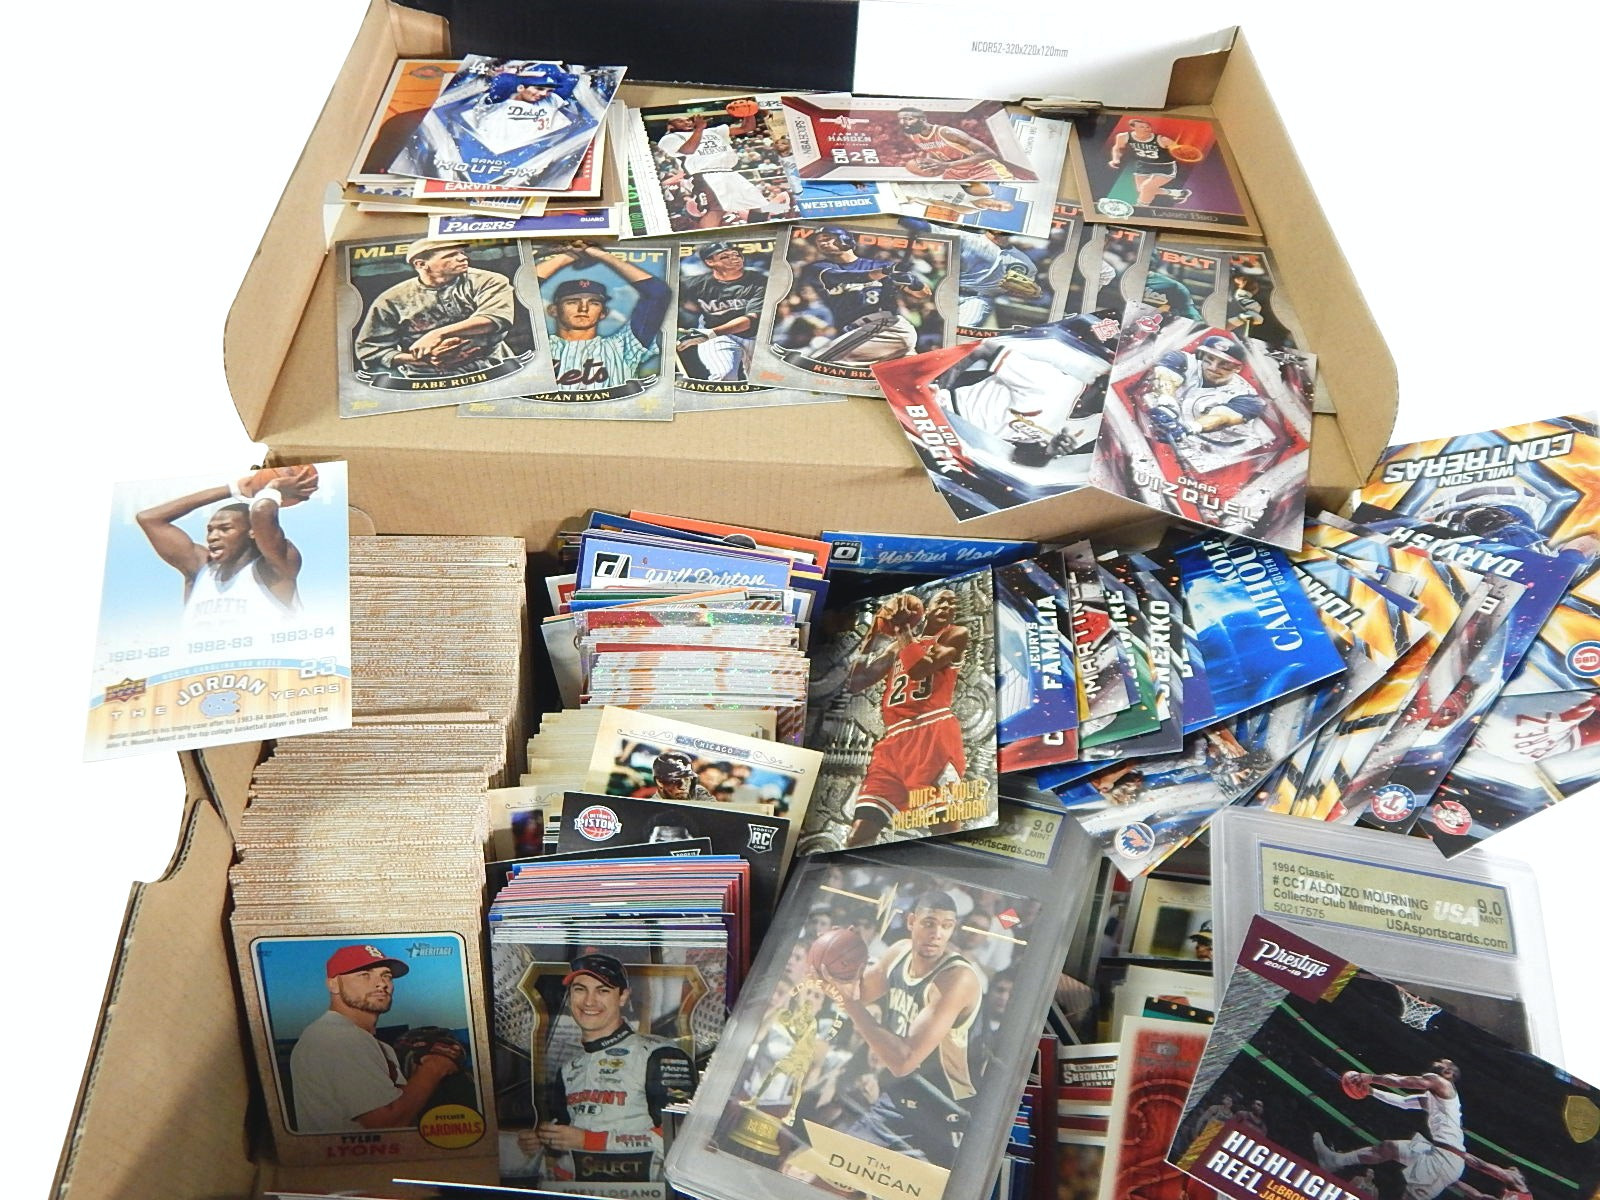 Shoebox Full of Sports Cards with Topps Heritage, Babe Ruth, Koufax - 1000 Ct.